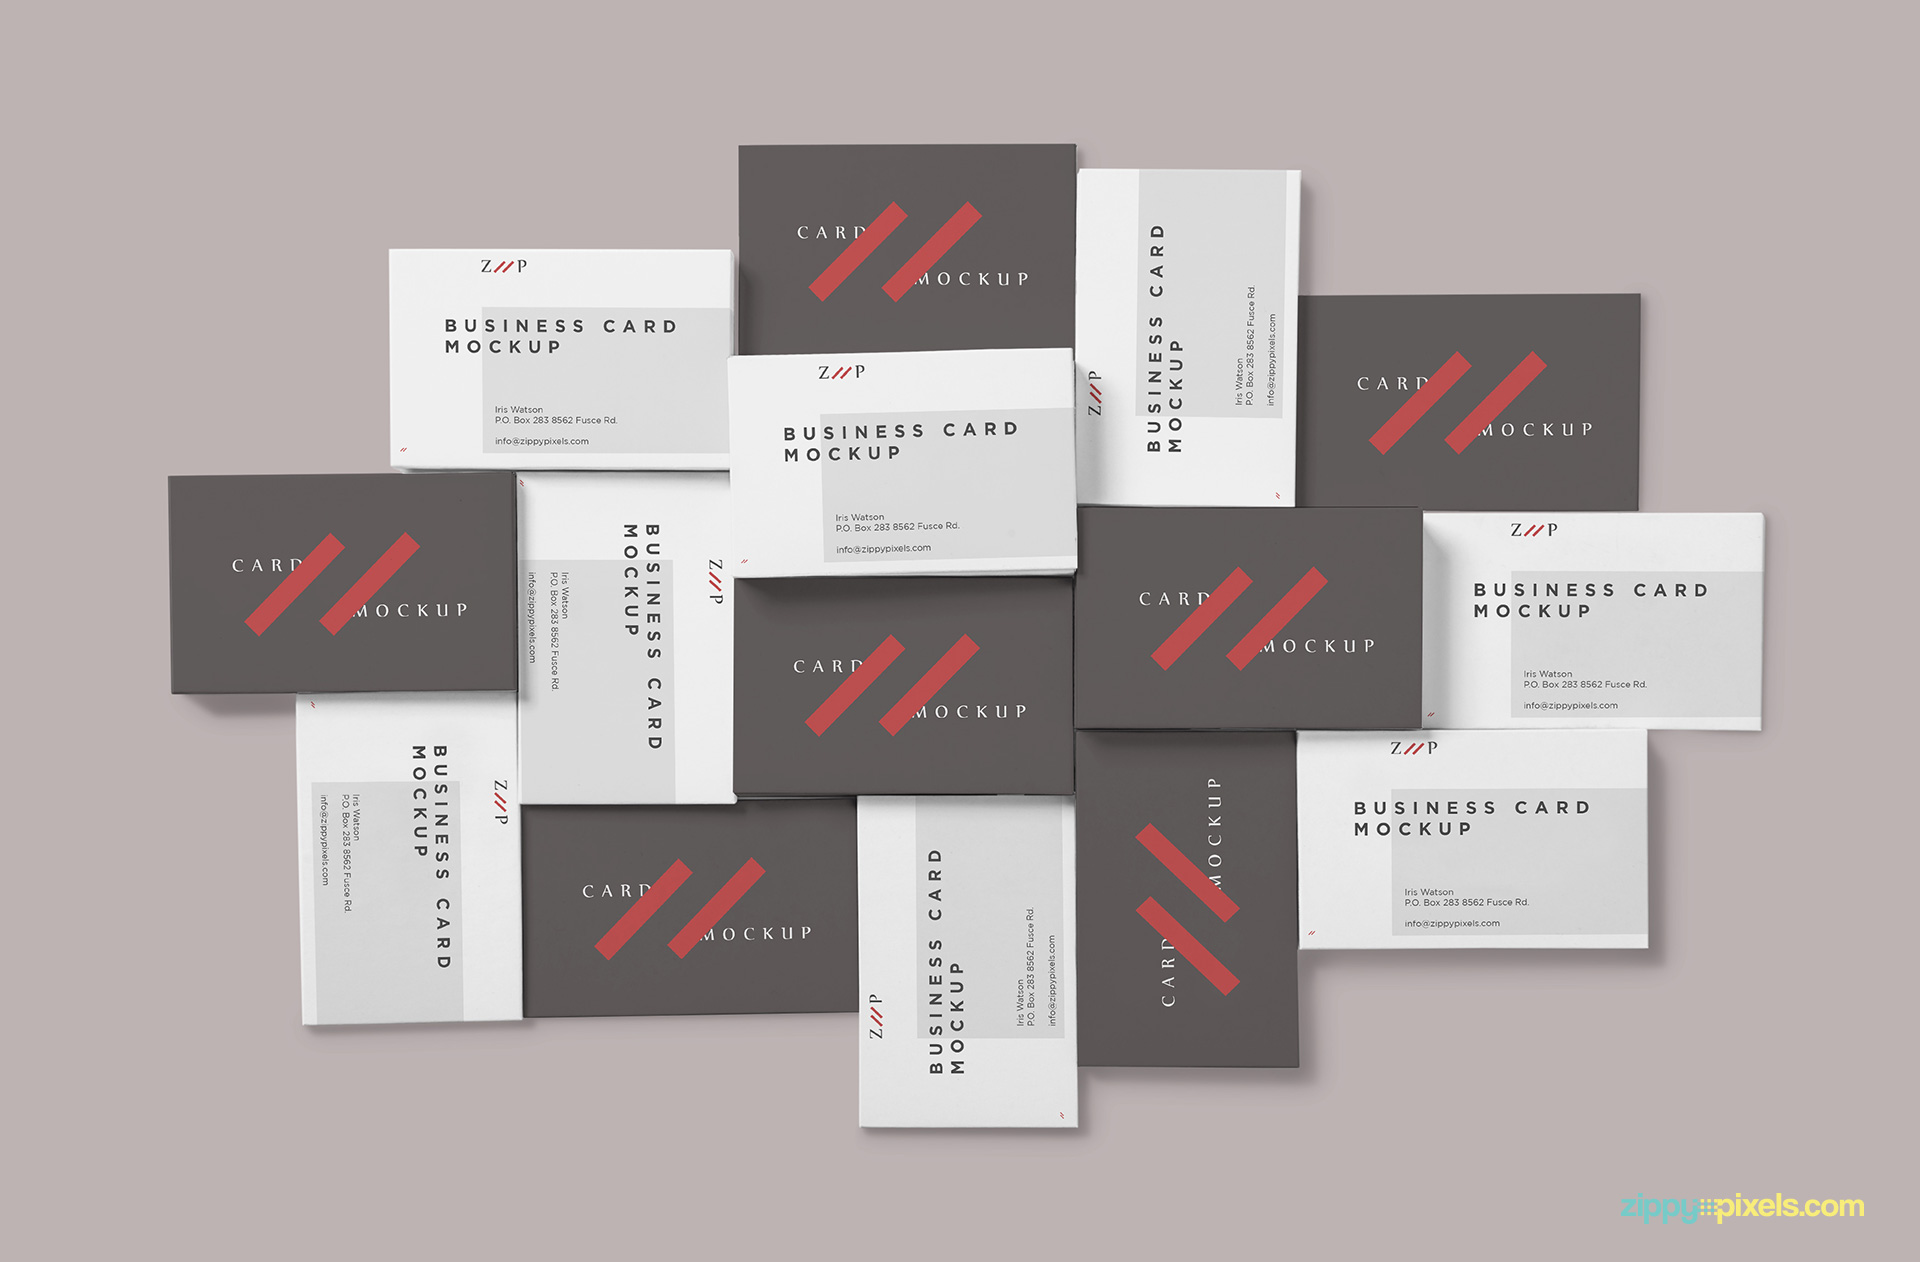 15 different stacks of business card mockup.